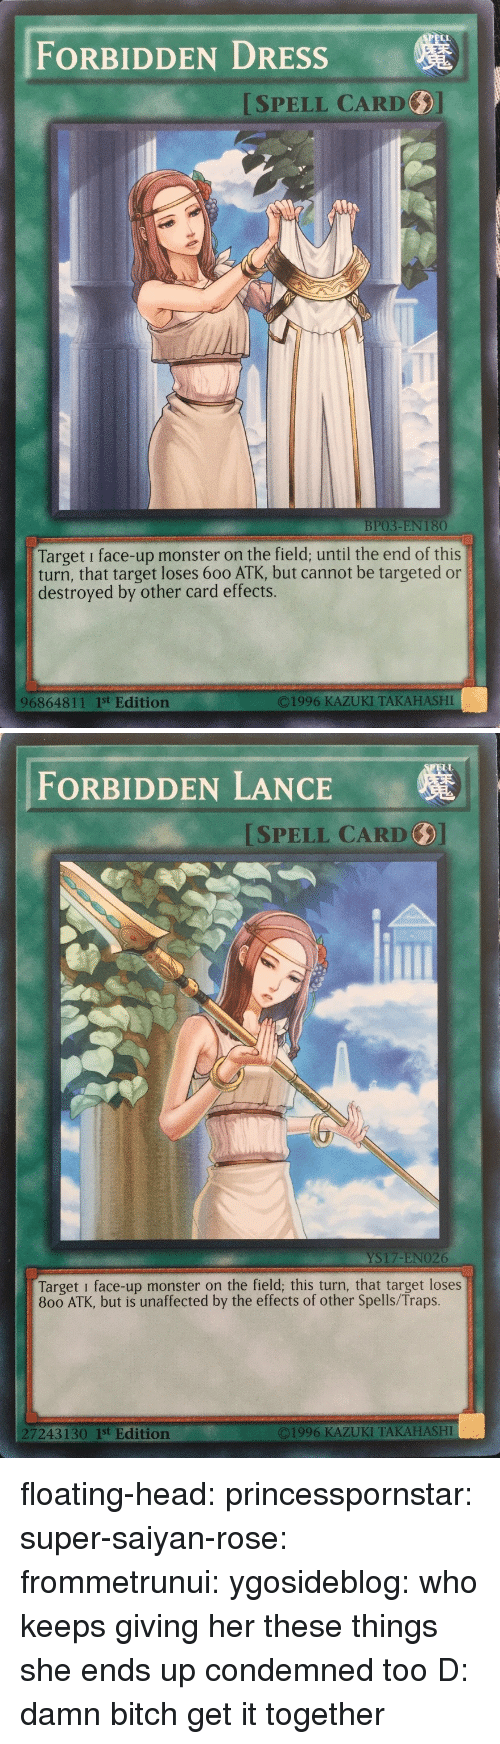 super saiyan: FORBIDDEN DRESSs  ISPELL CARD  BP03-EN 180  Target i face-up monster on the field; until the end of this  turn, that target loses 600 ATK, but cannot be targeted or  destroyed by other card effects.  96864811 1st Edition  O1996 KAZUKI TAKAHASHI   ELL  FORBIDDEN LANCE  SPELL CARD  YS17-ENO26  Target i face-up monster on the field; this turn, that target loses  800 ATK, but is unaffected by the effects of other Spells/Traps.  7243130 1st Edition  ©1996 KAZUKI TAKAHASHI floating-head: princesspornstar:  super-saiyan-rose:  frommetrunui:   ygosideblog: who keeps giving her these things   she ends up condemned too D:    damn bitch get it together